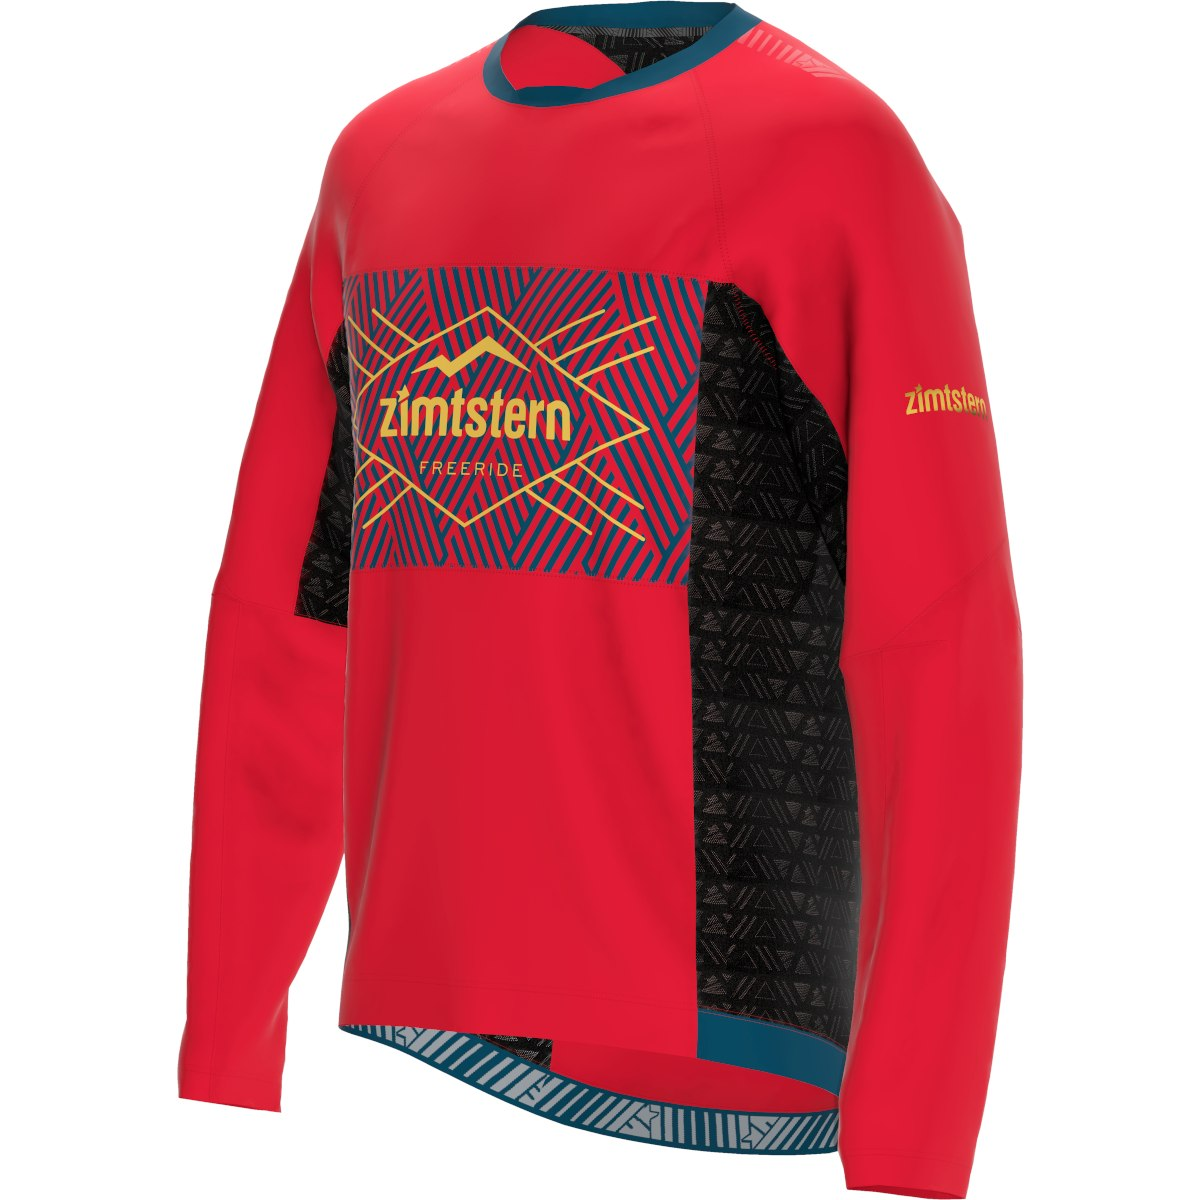 Image of Zimtstern TechZonez Long Sleeve Shirt - cyber red/french navy/mimosa